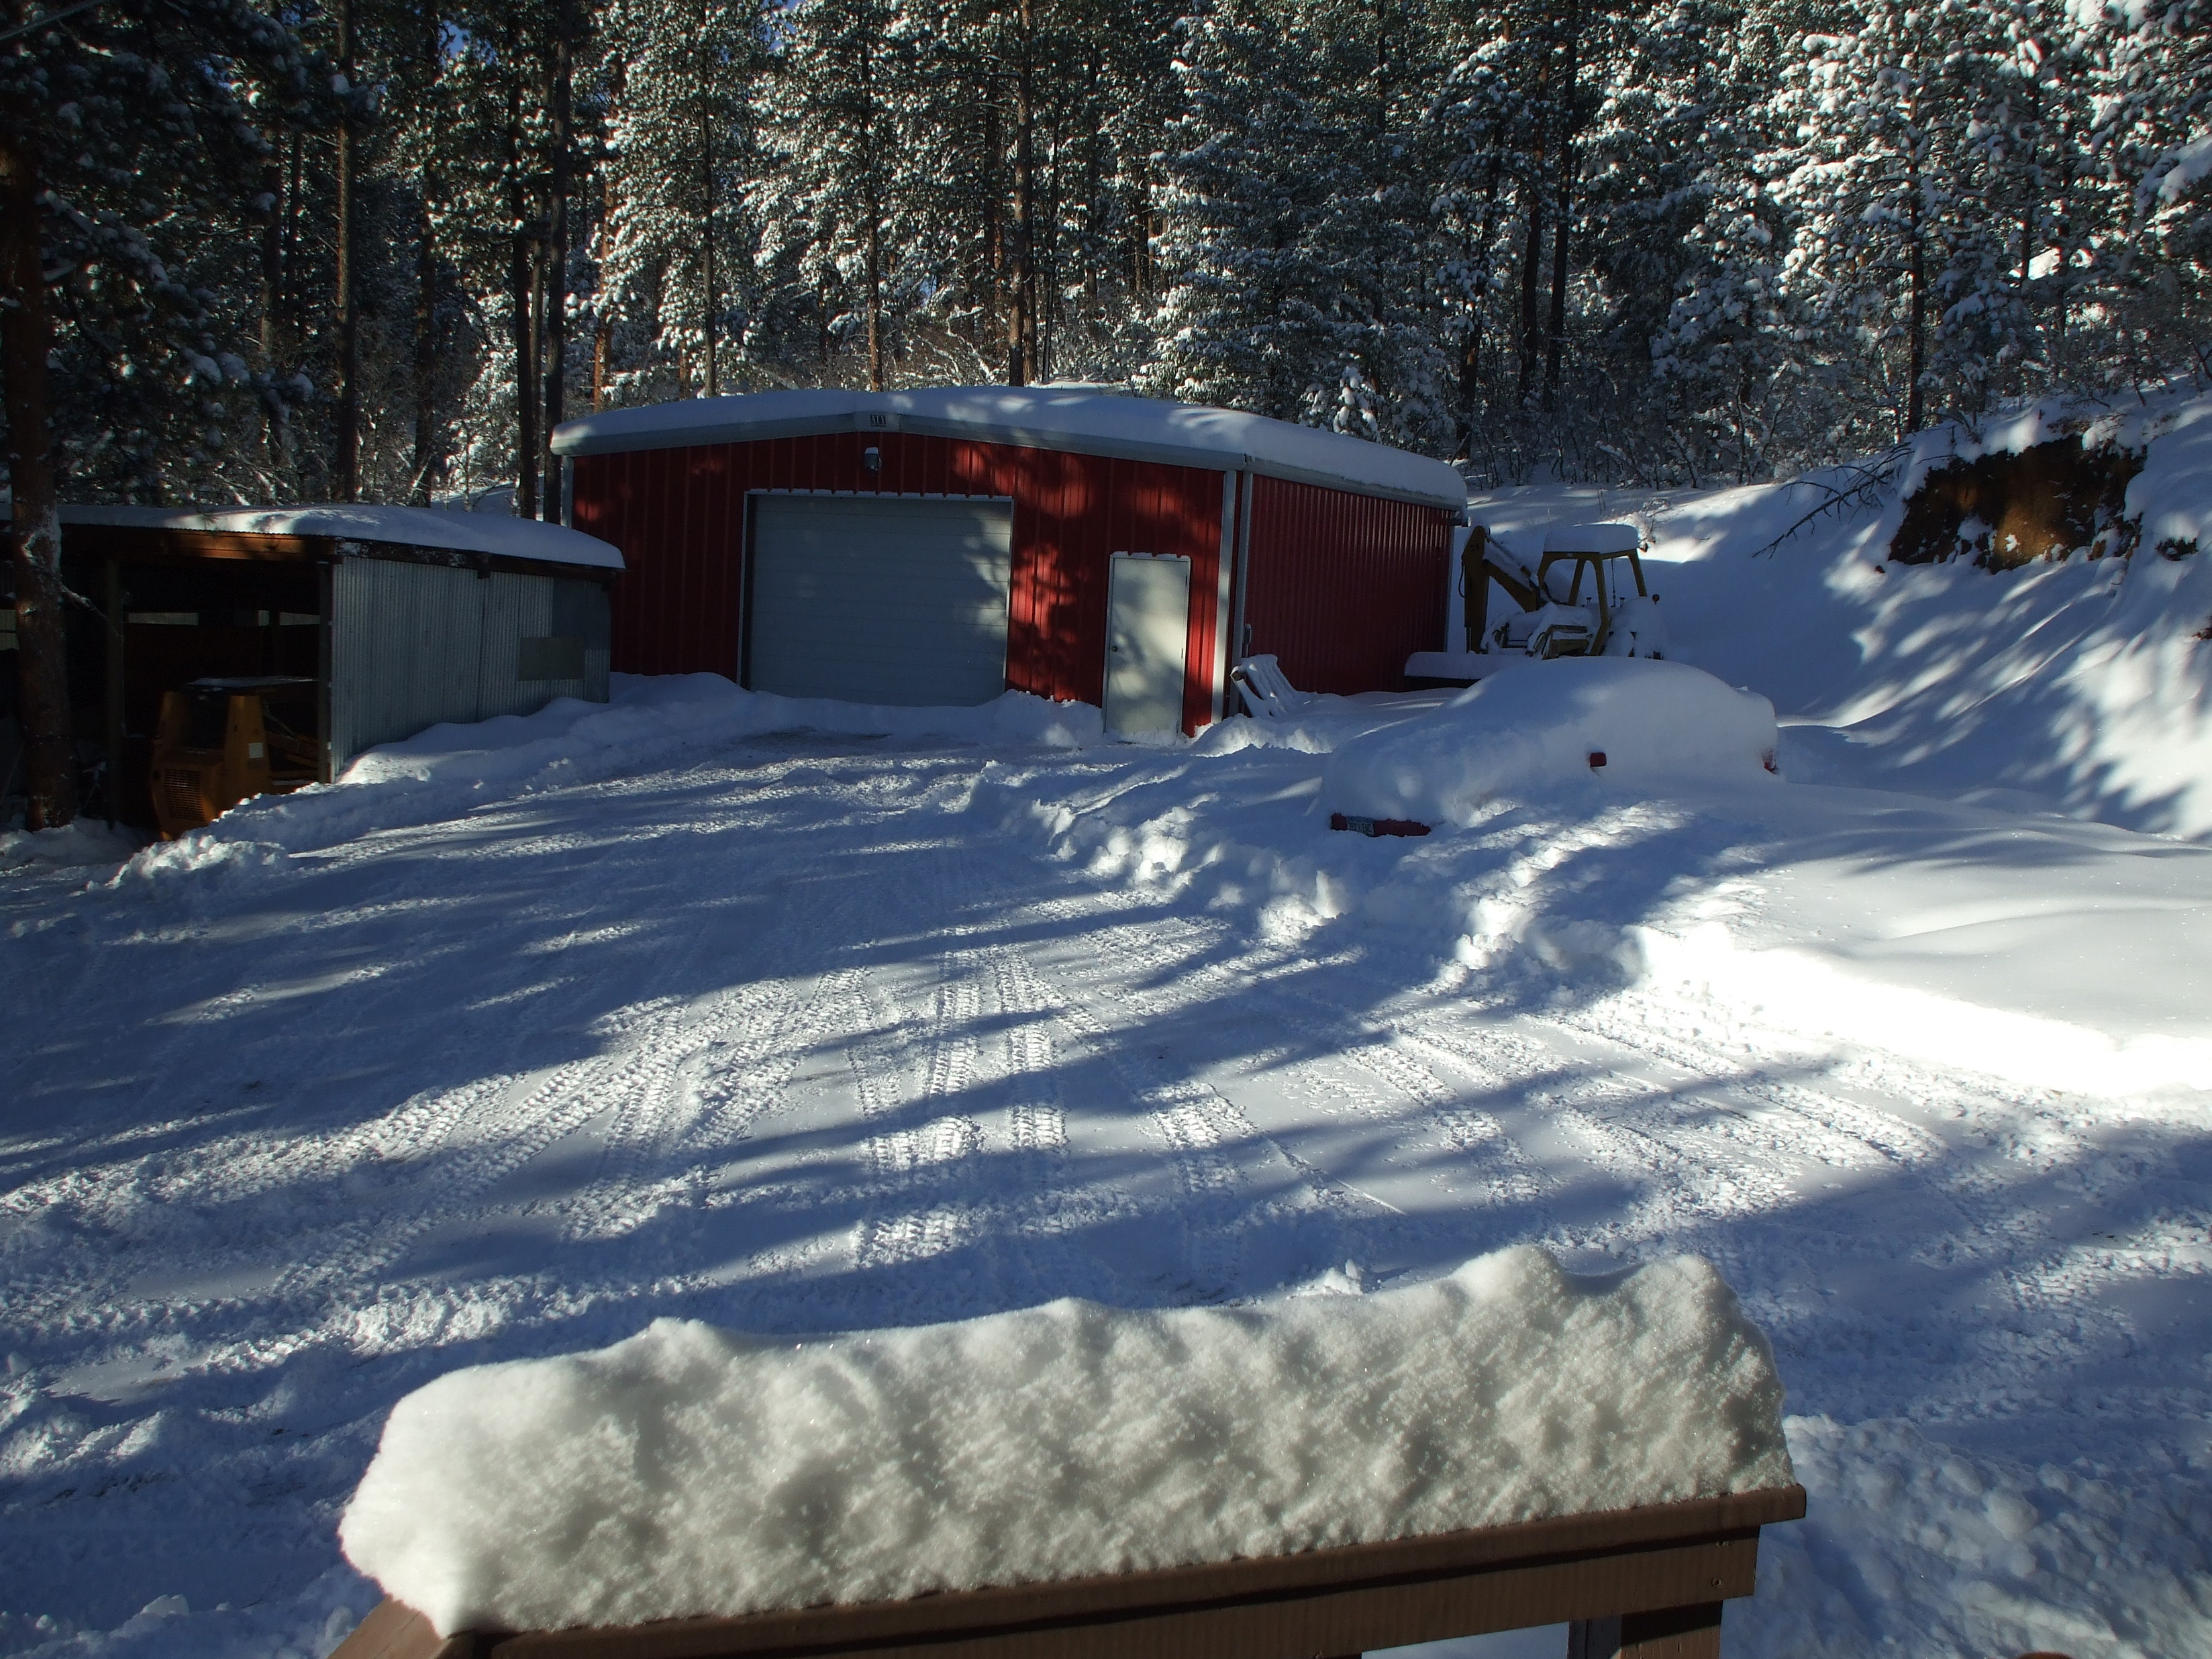 Click image for larger version  Name:snow 12 15 2015 001.JPG Views:140 Size:1.83 MB ID:2143519